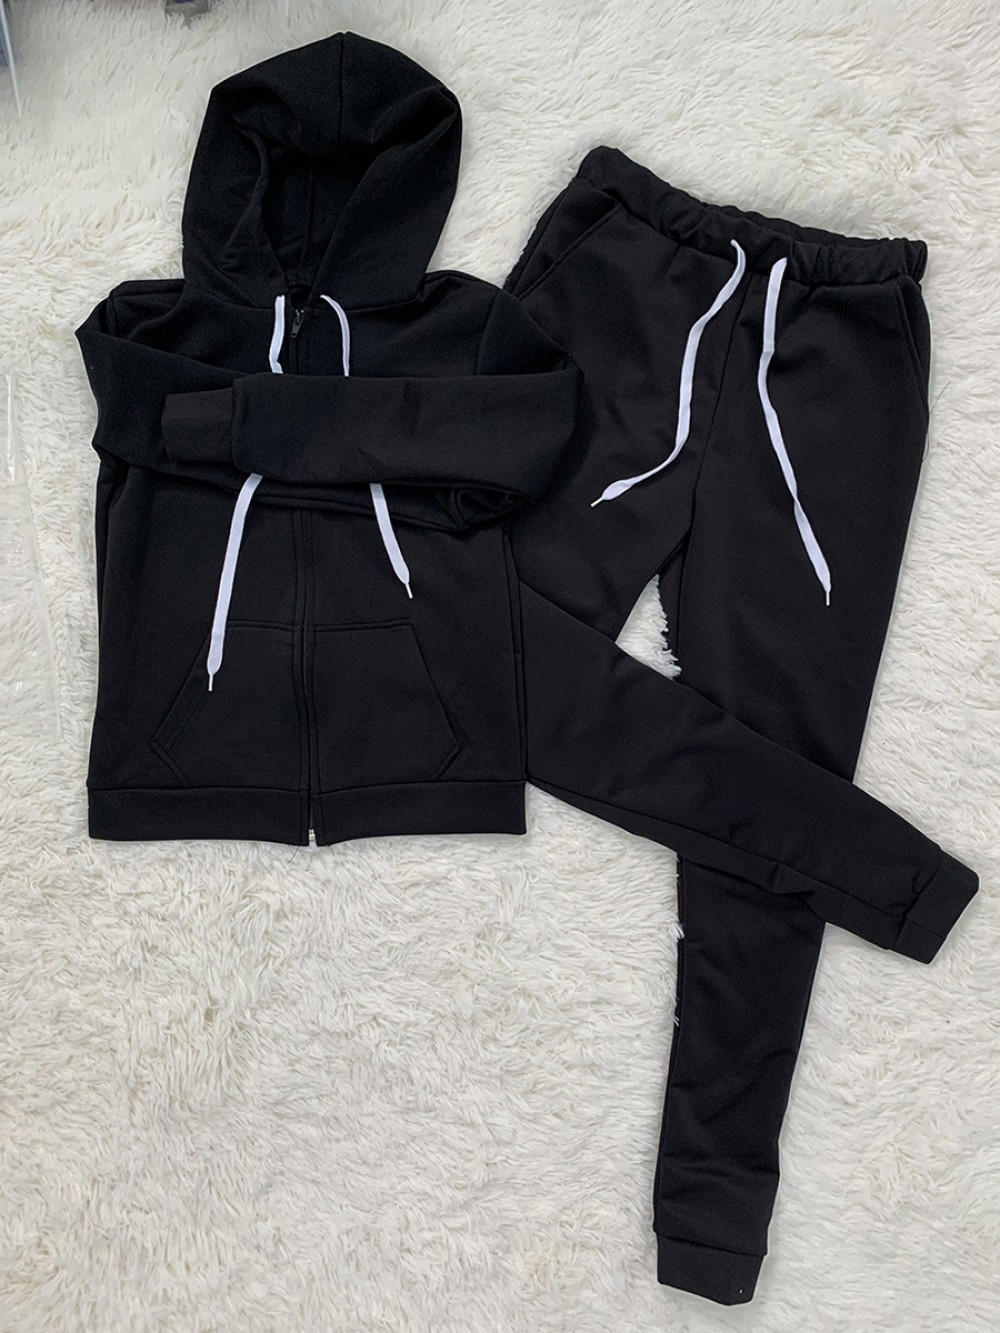 Black Hooded Neck High Waist 2 Piece Outfit Online Wholesale